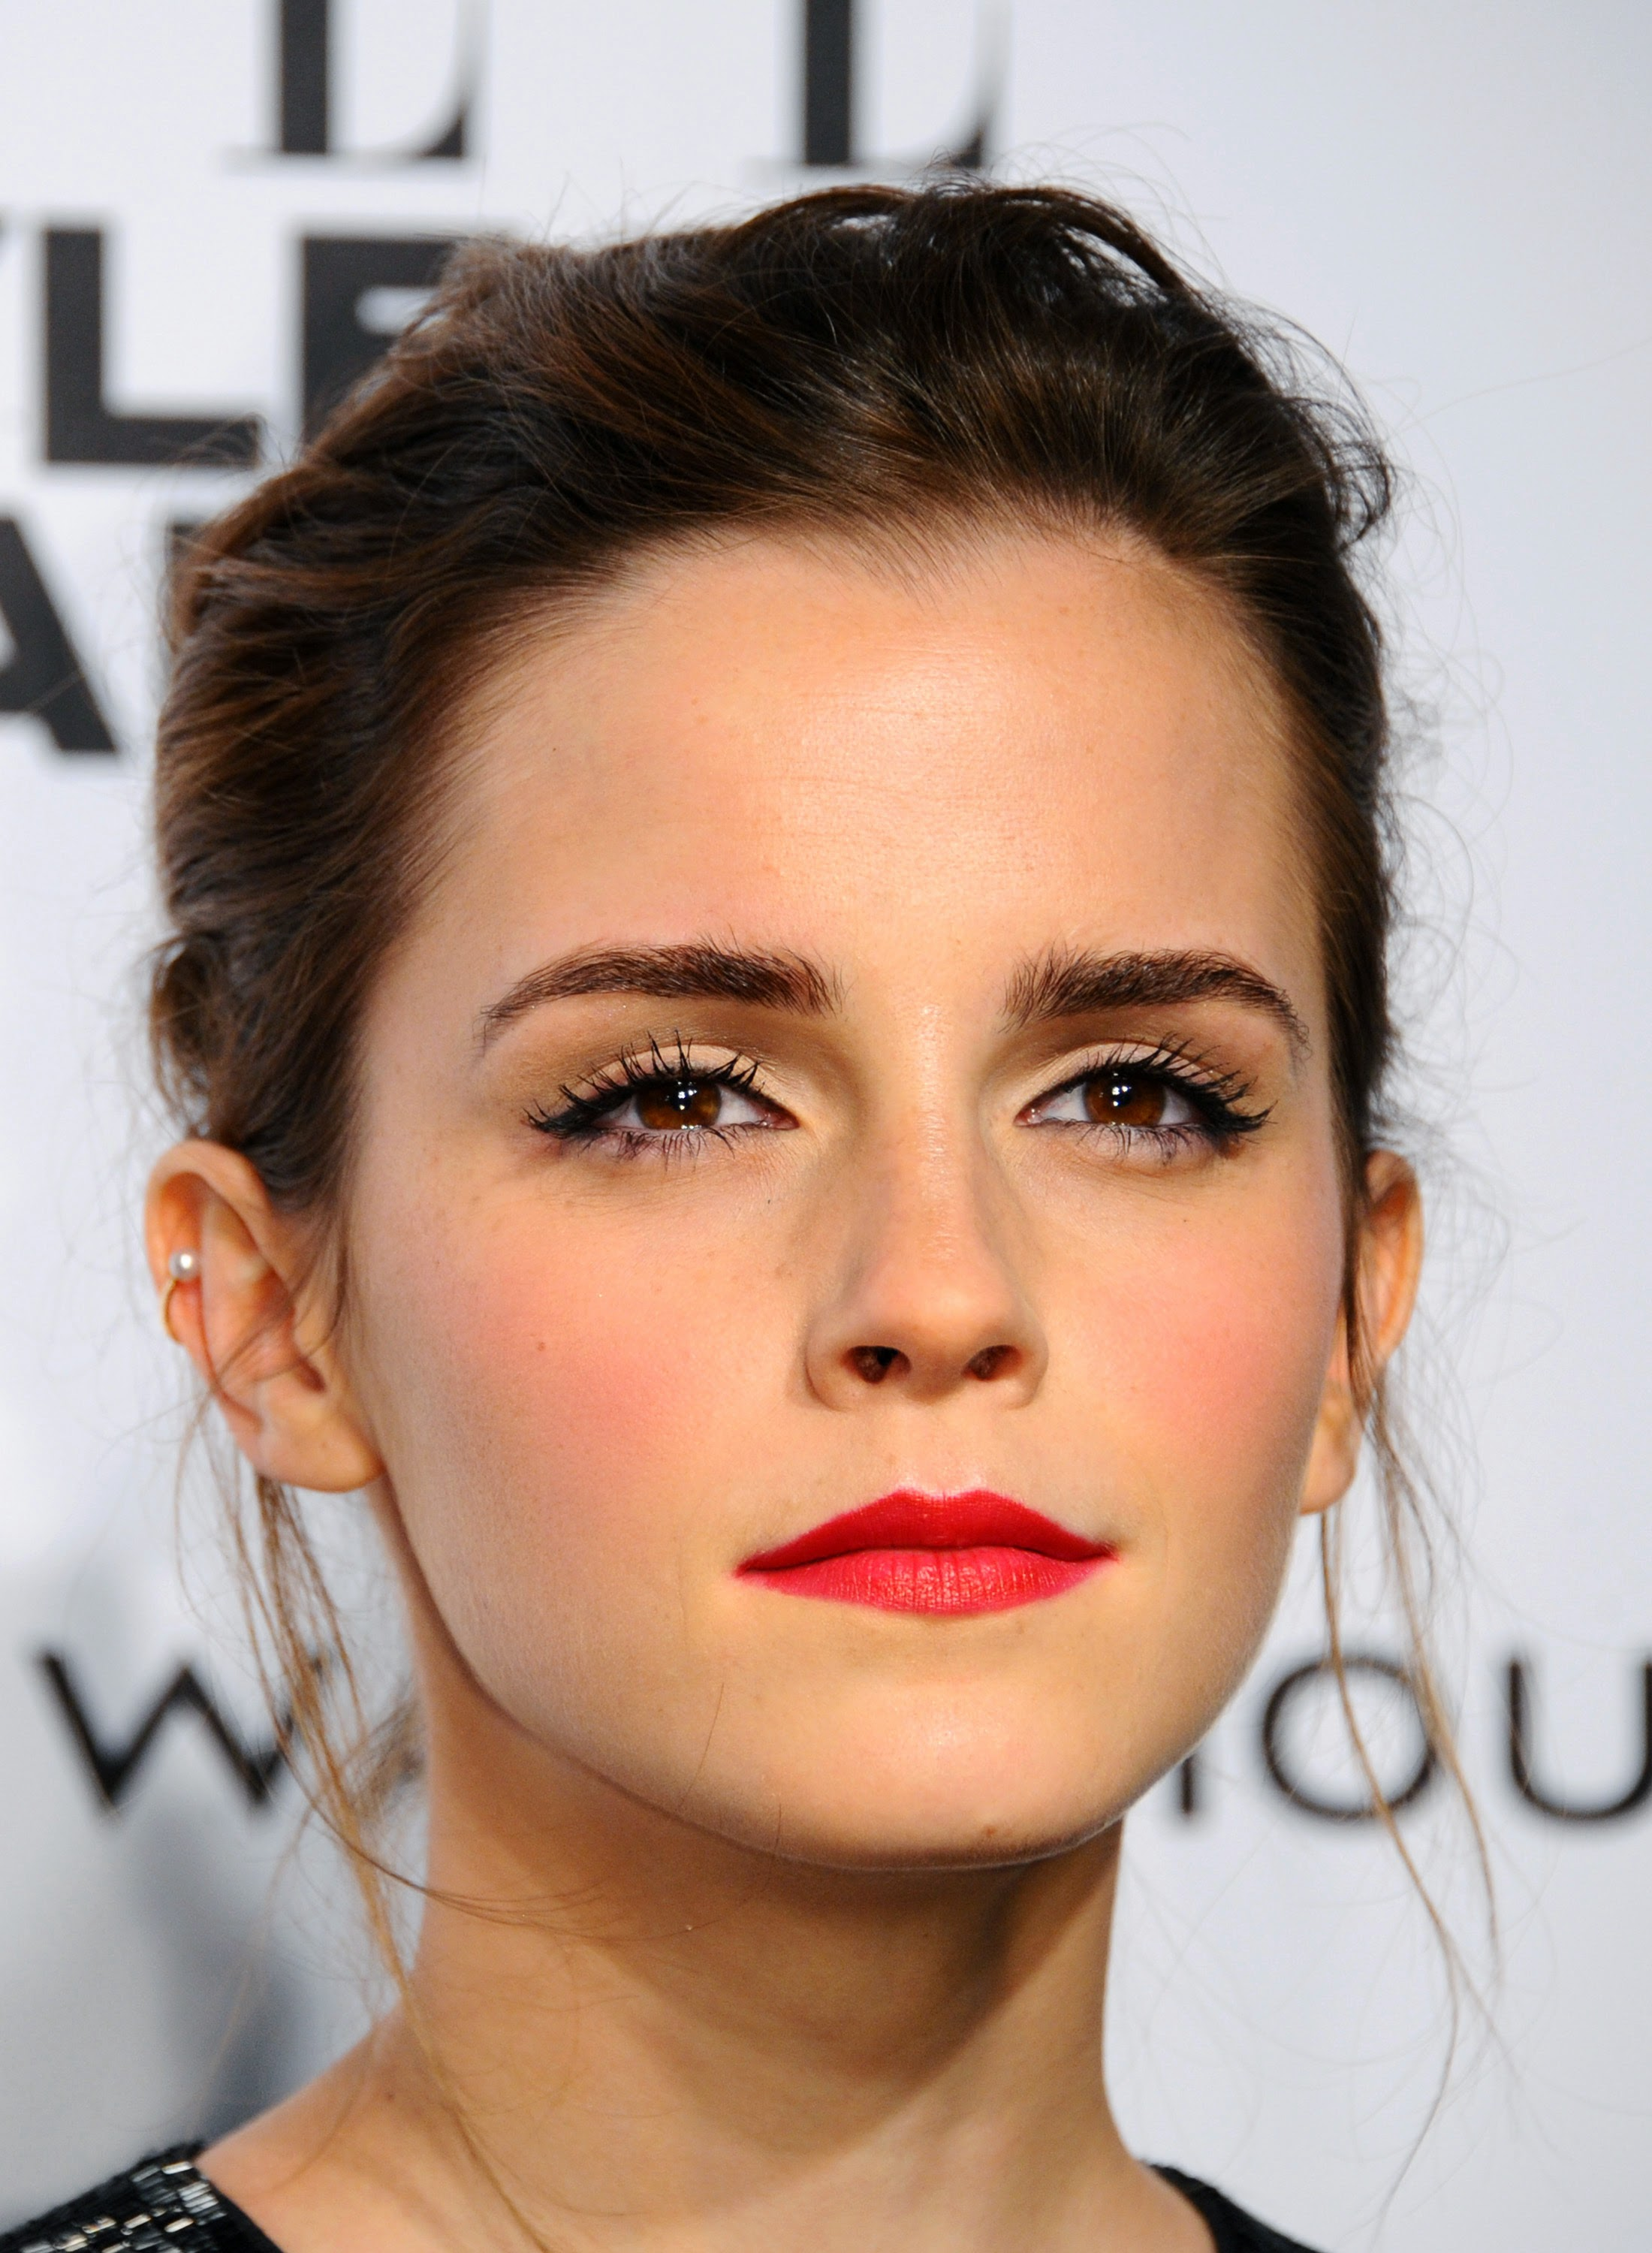 Pretty Makeup With The Eye Glitters 2052994: Emma Watson Pictures Gallery (23)